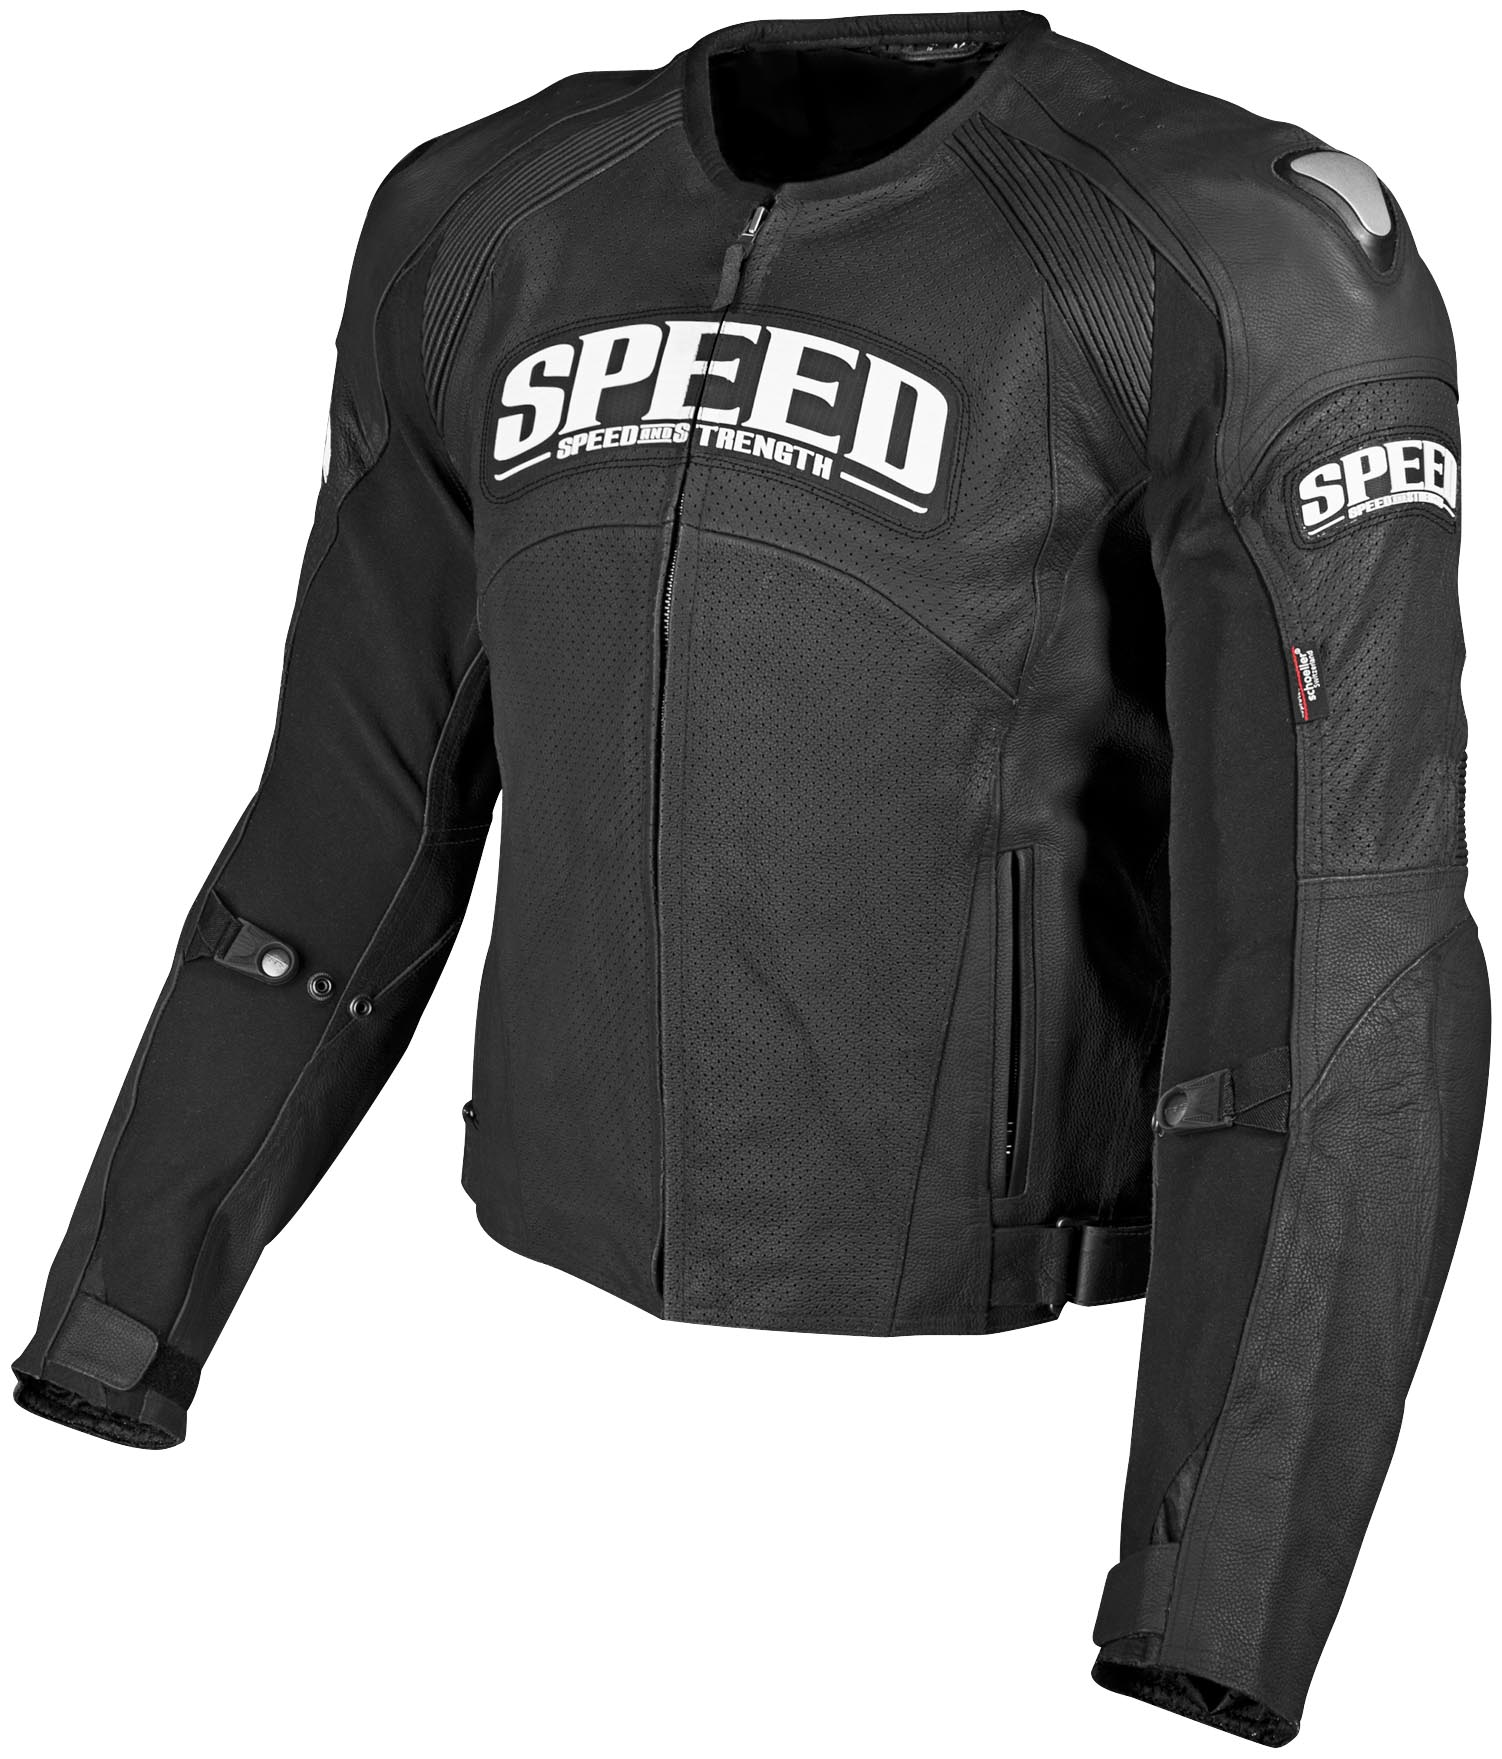 Speed Strength American Beauty Textile Leather Womens Jacket | eBay